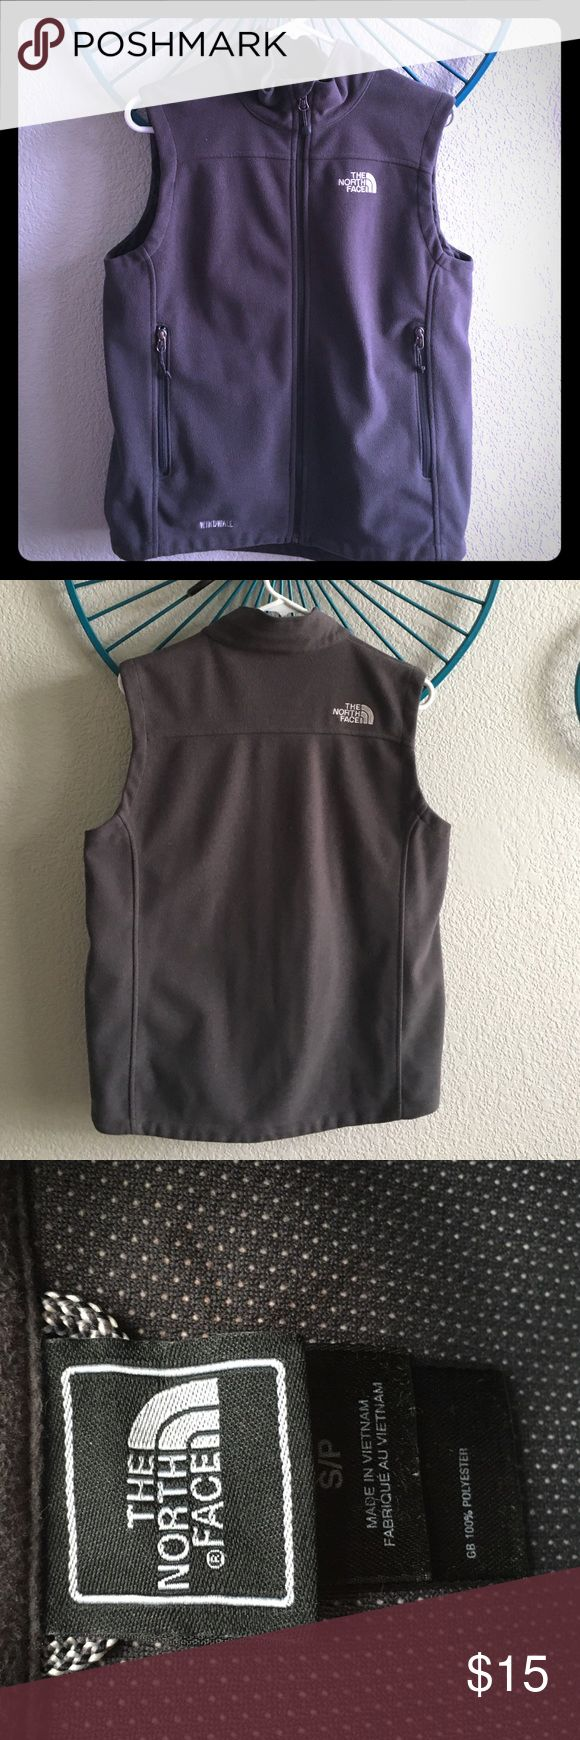 Men's size small gray North Face fleece vest Great condition North Face fleece vest. As a size small/medium woman this best fit me as well. Message me with any questions or for additional pictures. North Face Jackets & Coats Vests